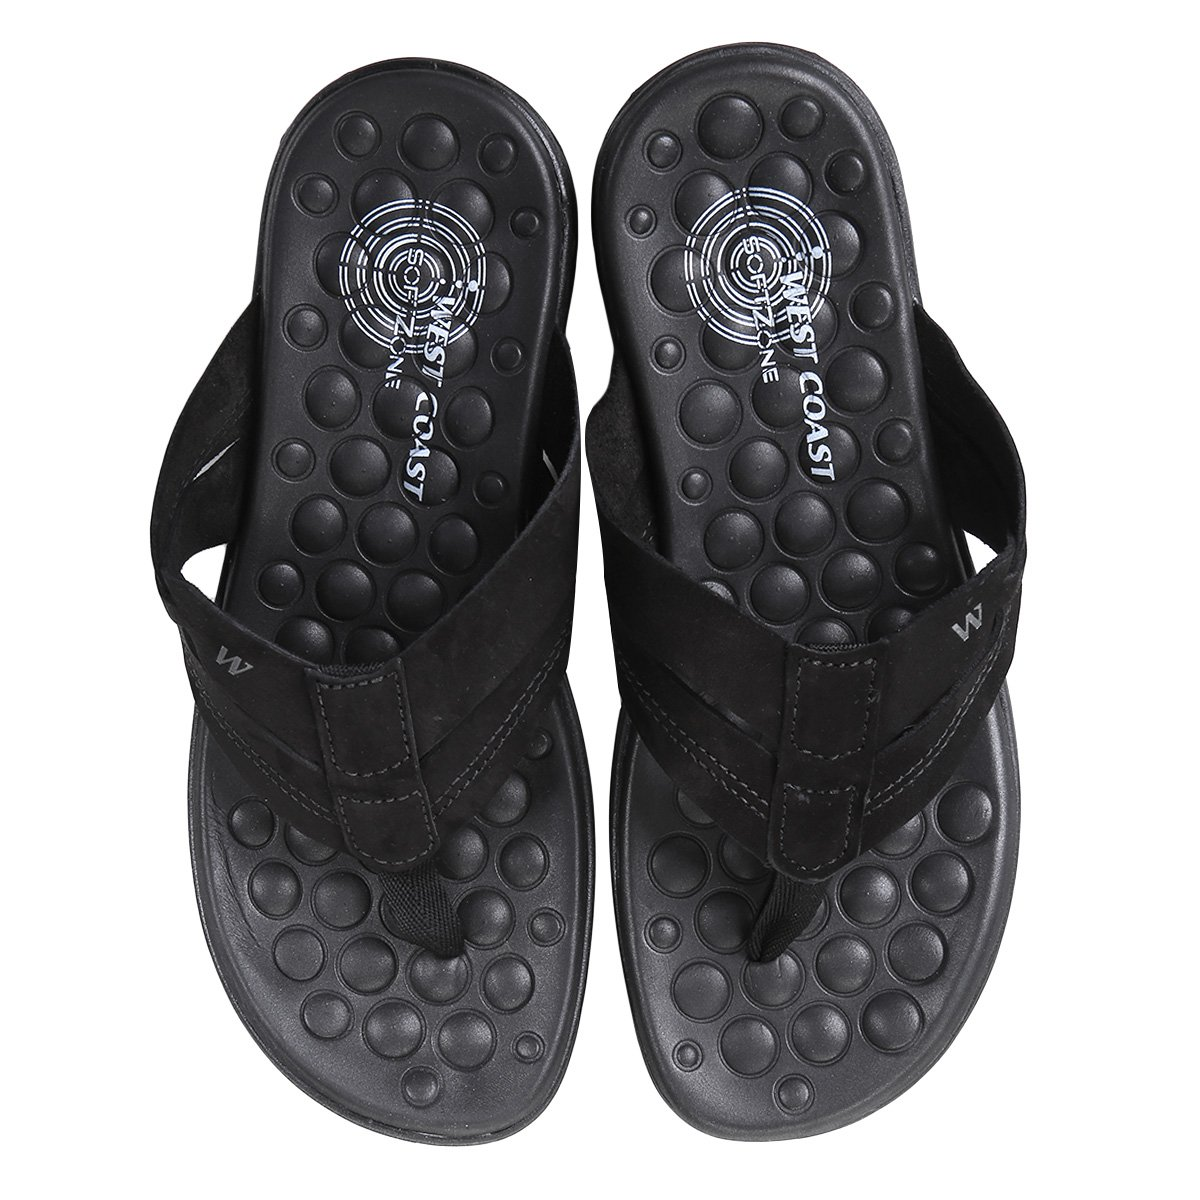 Chinelo Masculino Coast Block Couro Couro West Chinelo Preto 6zddwUq